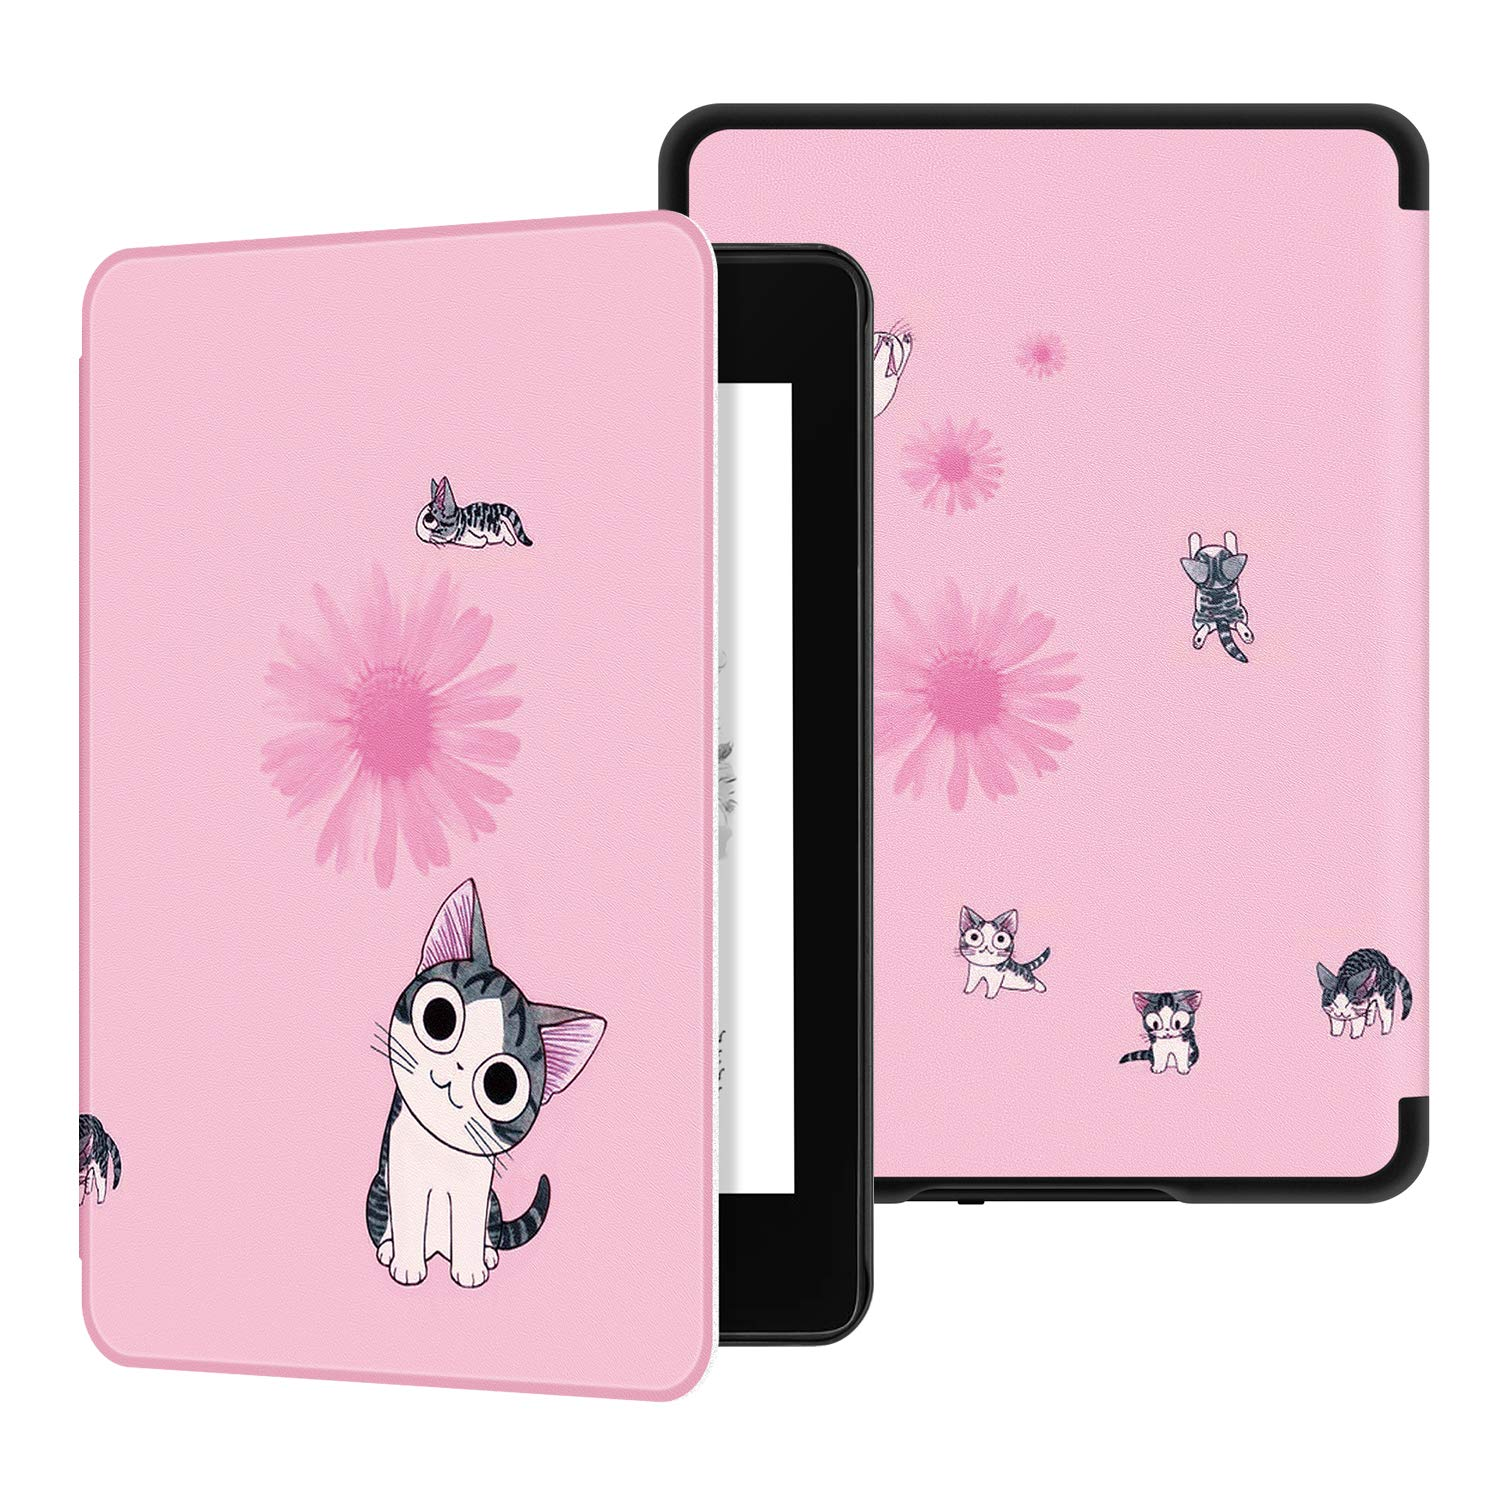 Ayotu Water-Safe Case for Kindle Paperwhite 2018 - PU Leather Smart Cover with Auto Wake/Sleep-Fits Amazon The Latest Kindle Paperwhite Leather Cover (10th Generation-2018),K10 The Fantasy Cat